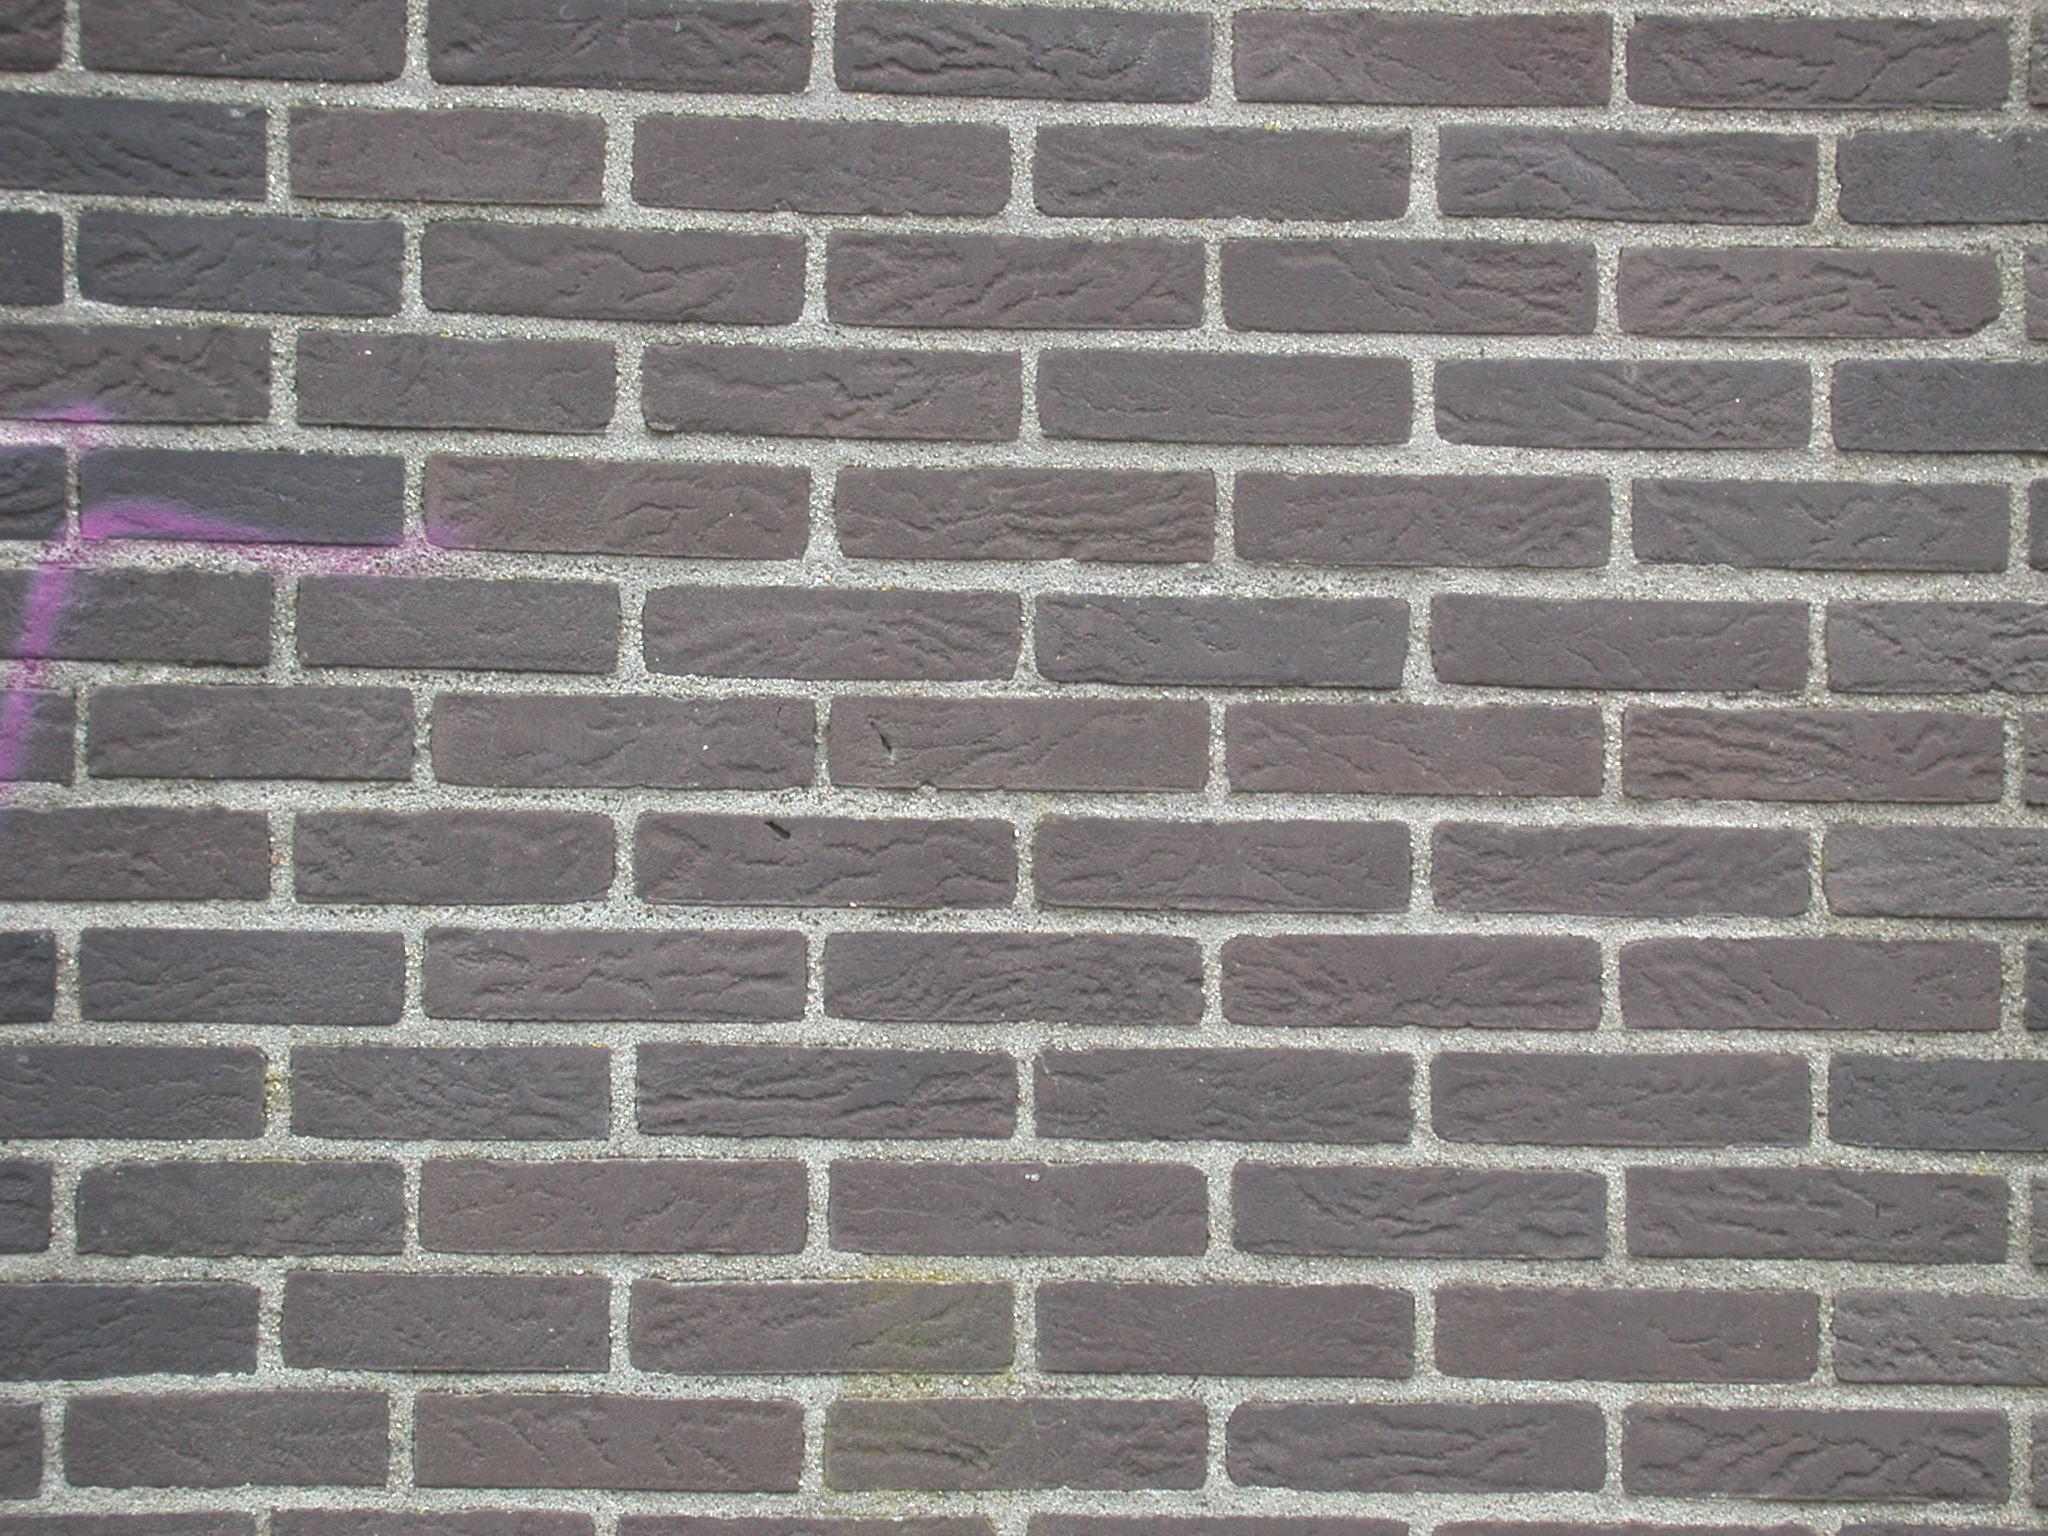 brown brick wall with some graffiti